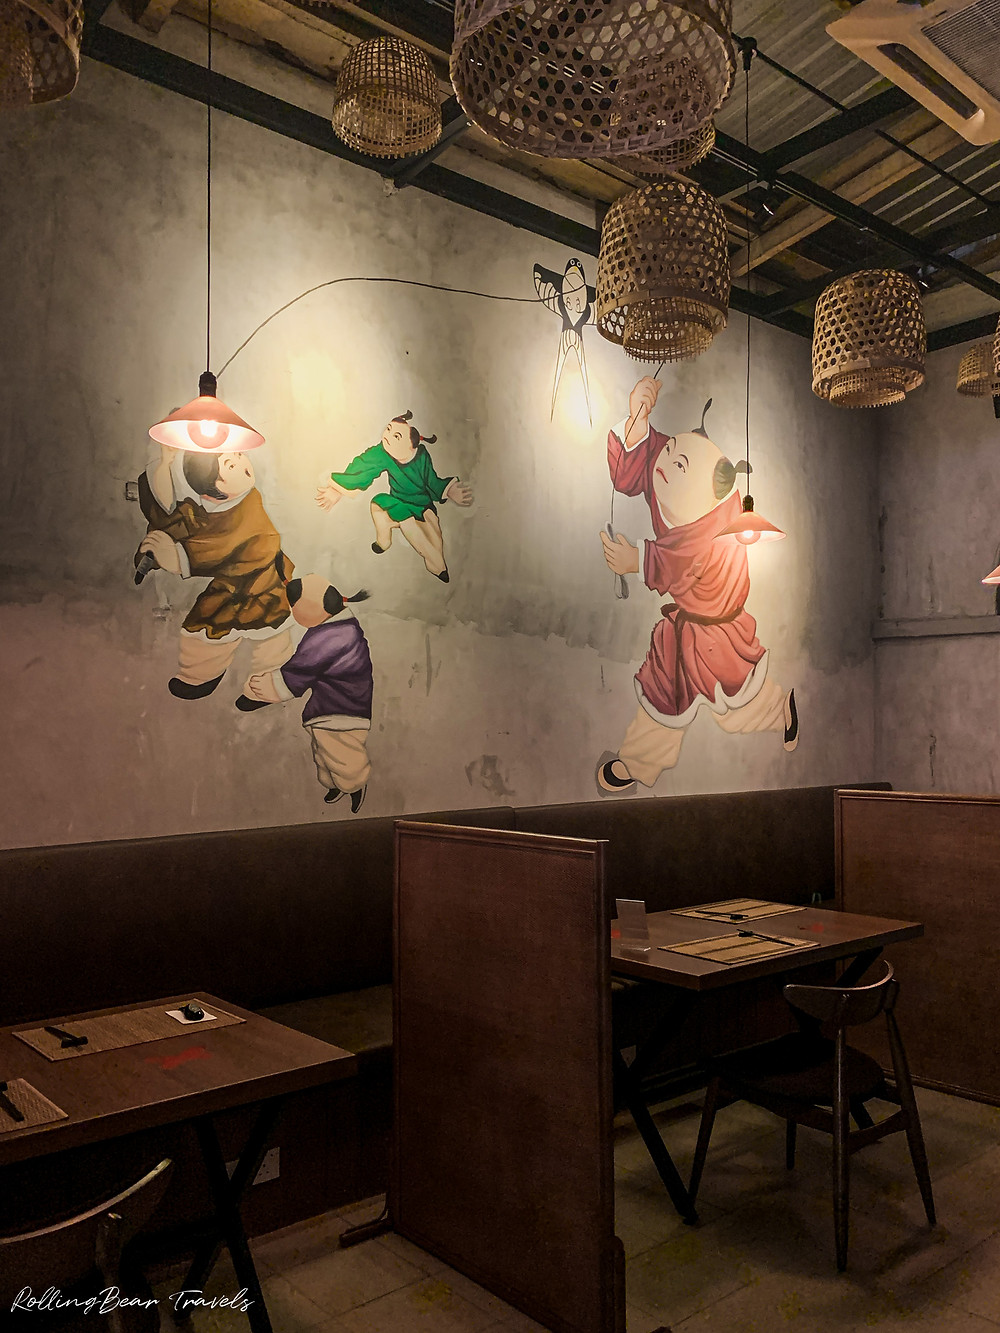 二更Clock Eleven interiors: minimalist wooden partitioned tables, Chinese art mural | RollingBear Travels.